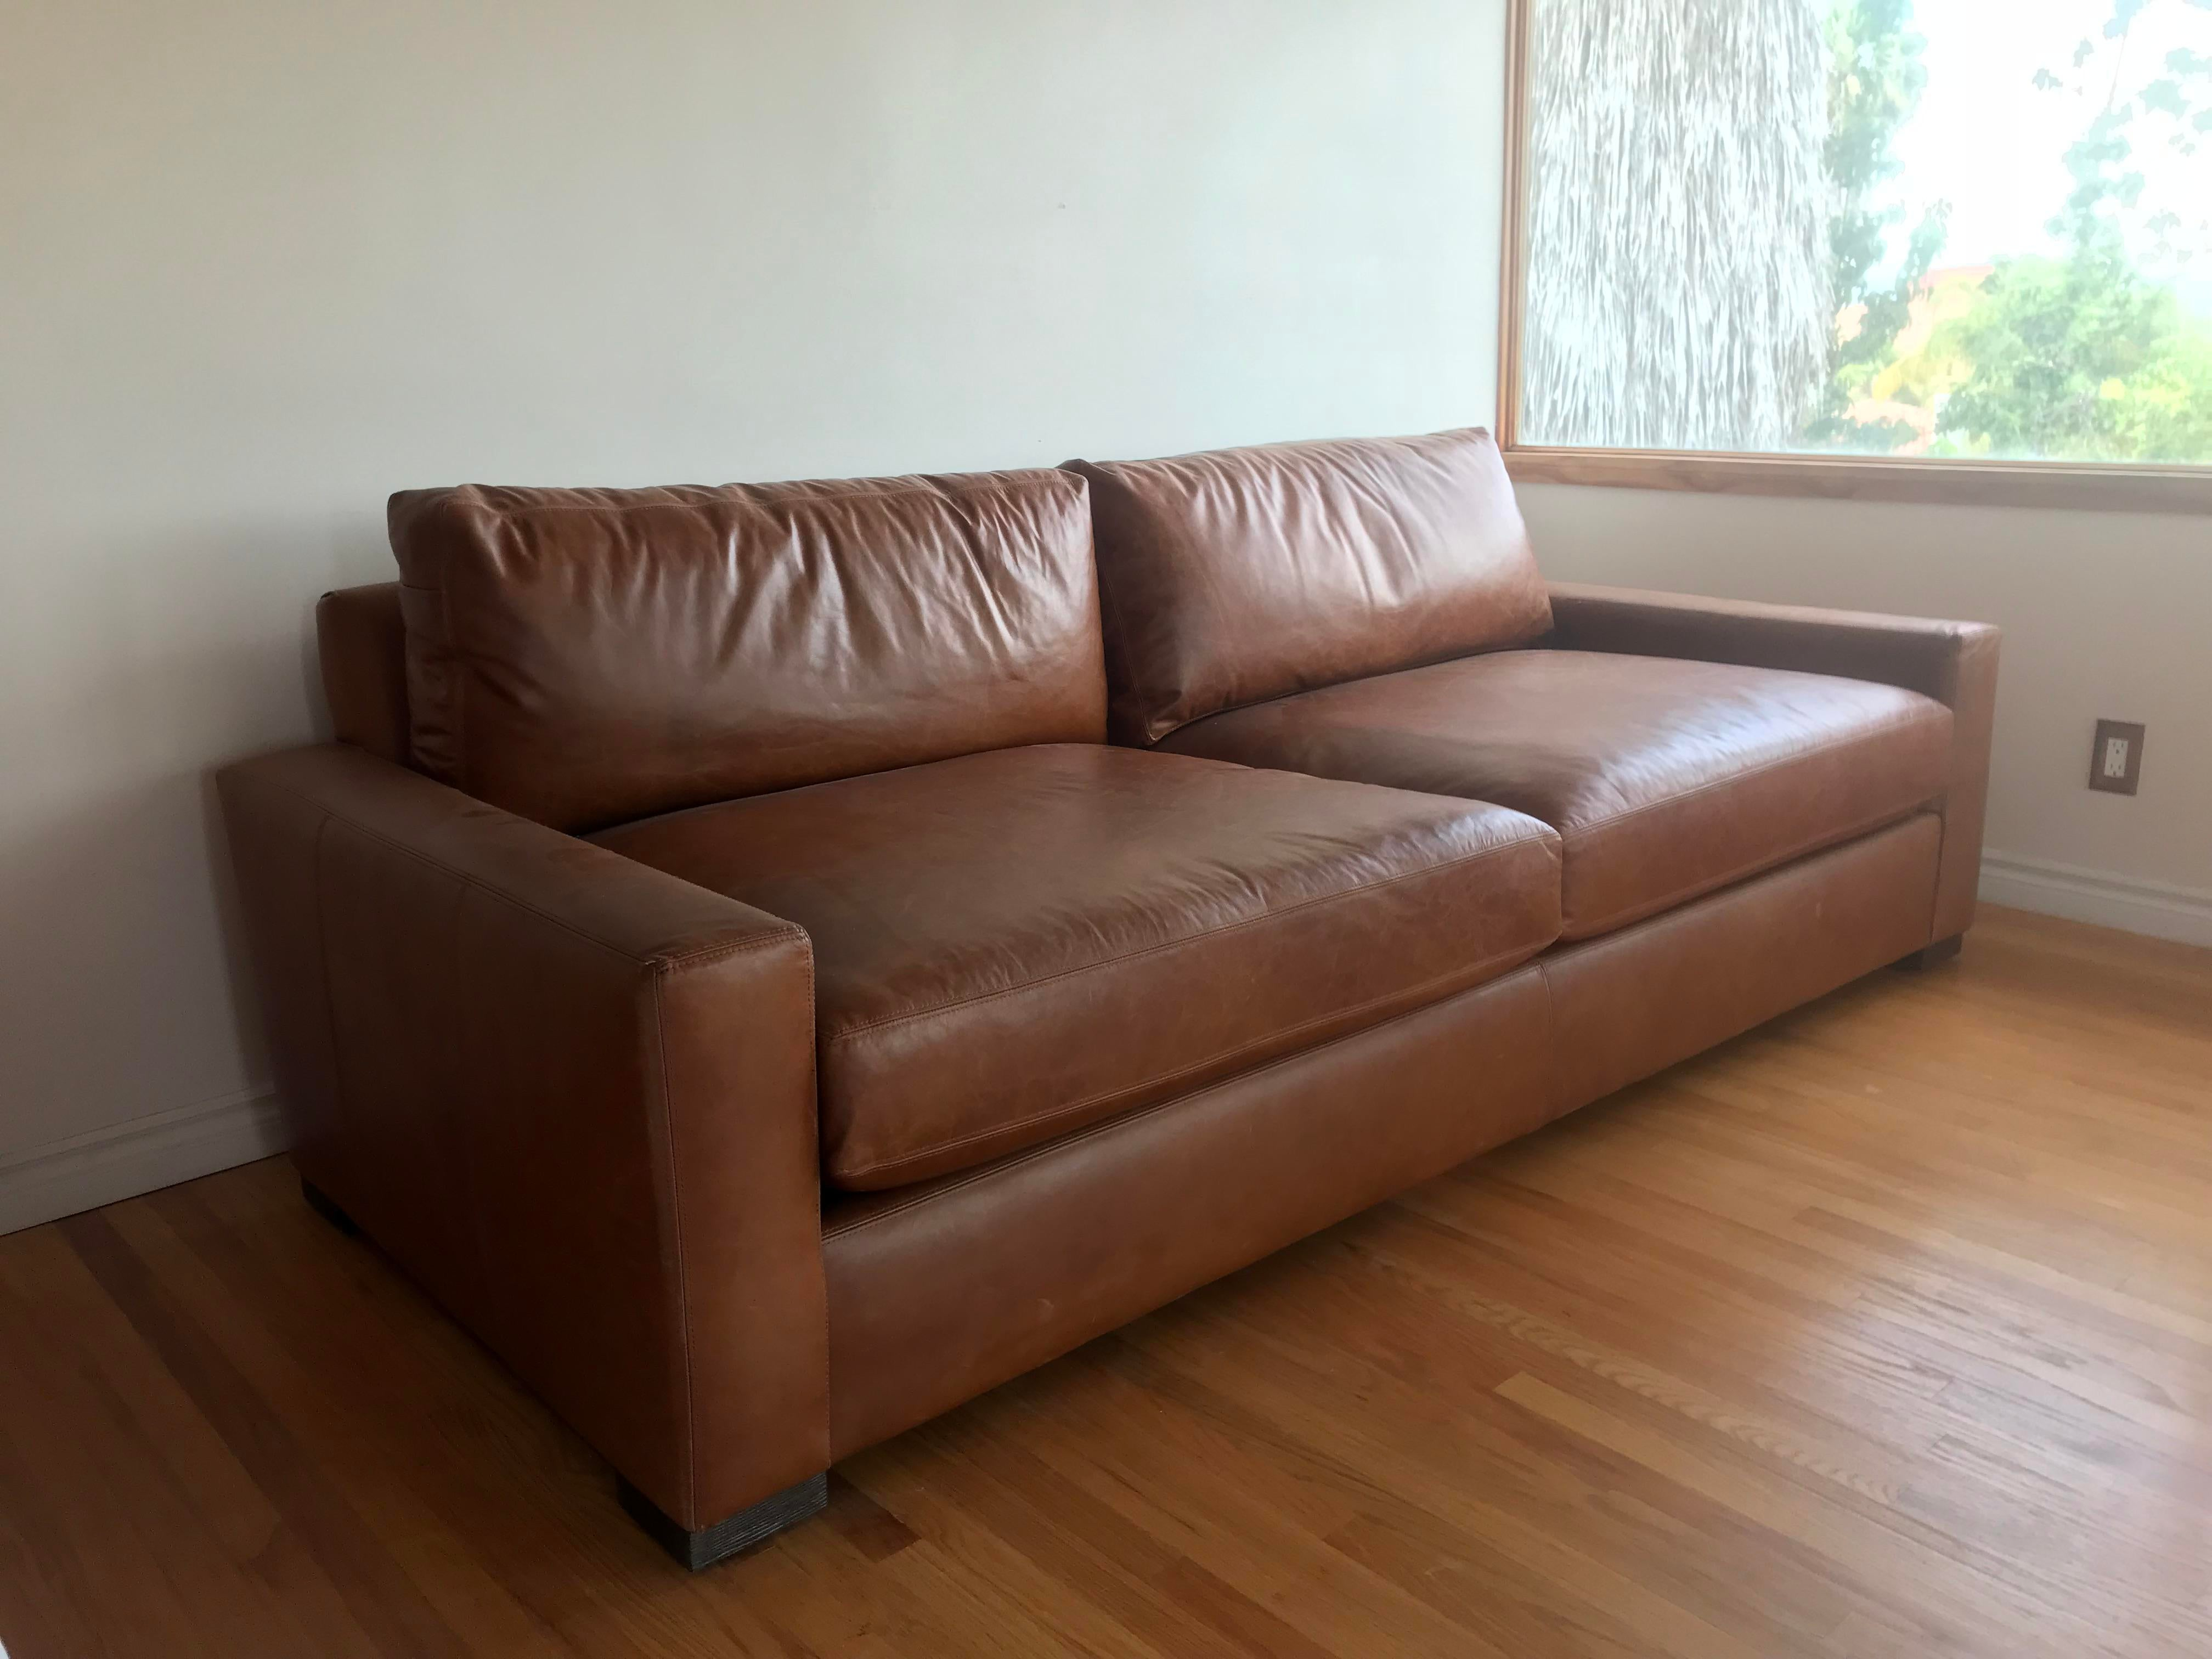 This Is A Brand New Restoration Hardware Sofa Currently Retailing Online  For $5,295 W/ Italian